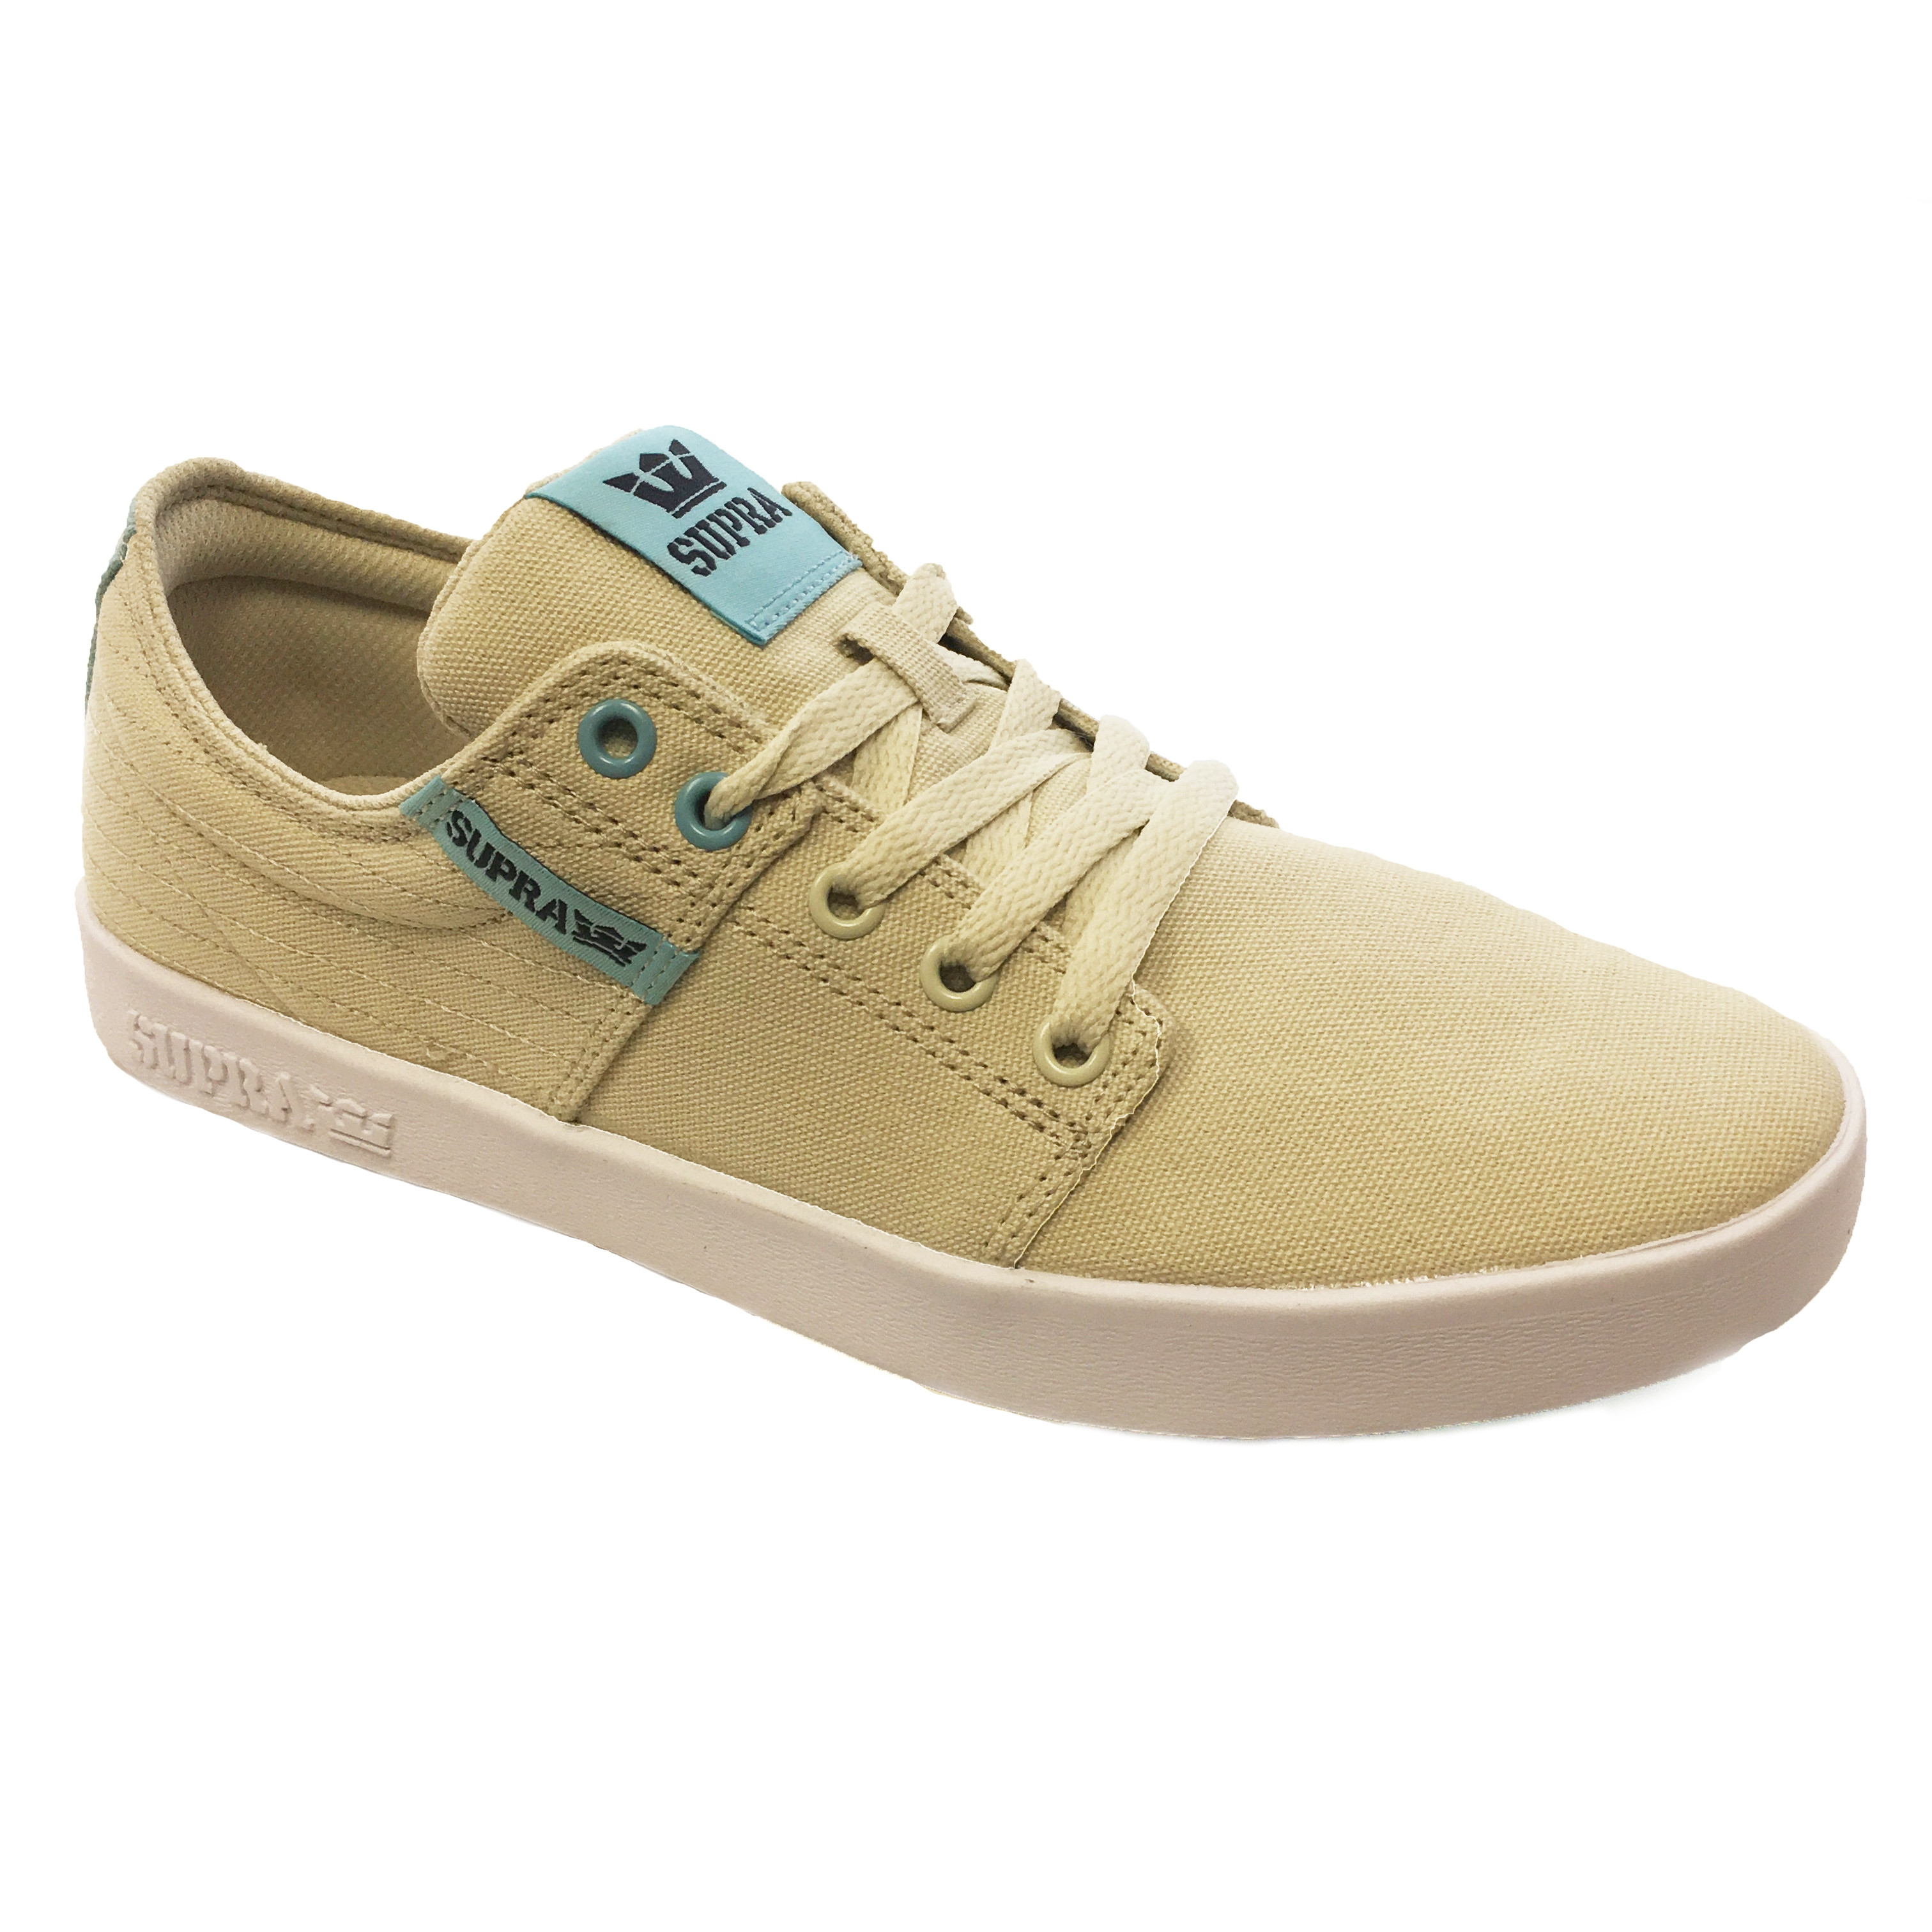 c3f54d9da841 SUPRA Men s Stacks II Canvas Shoes Trainers Bone Stitch-White